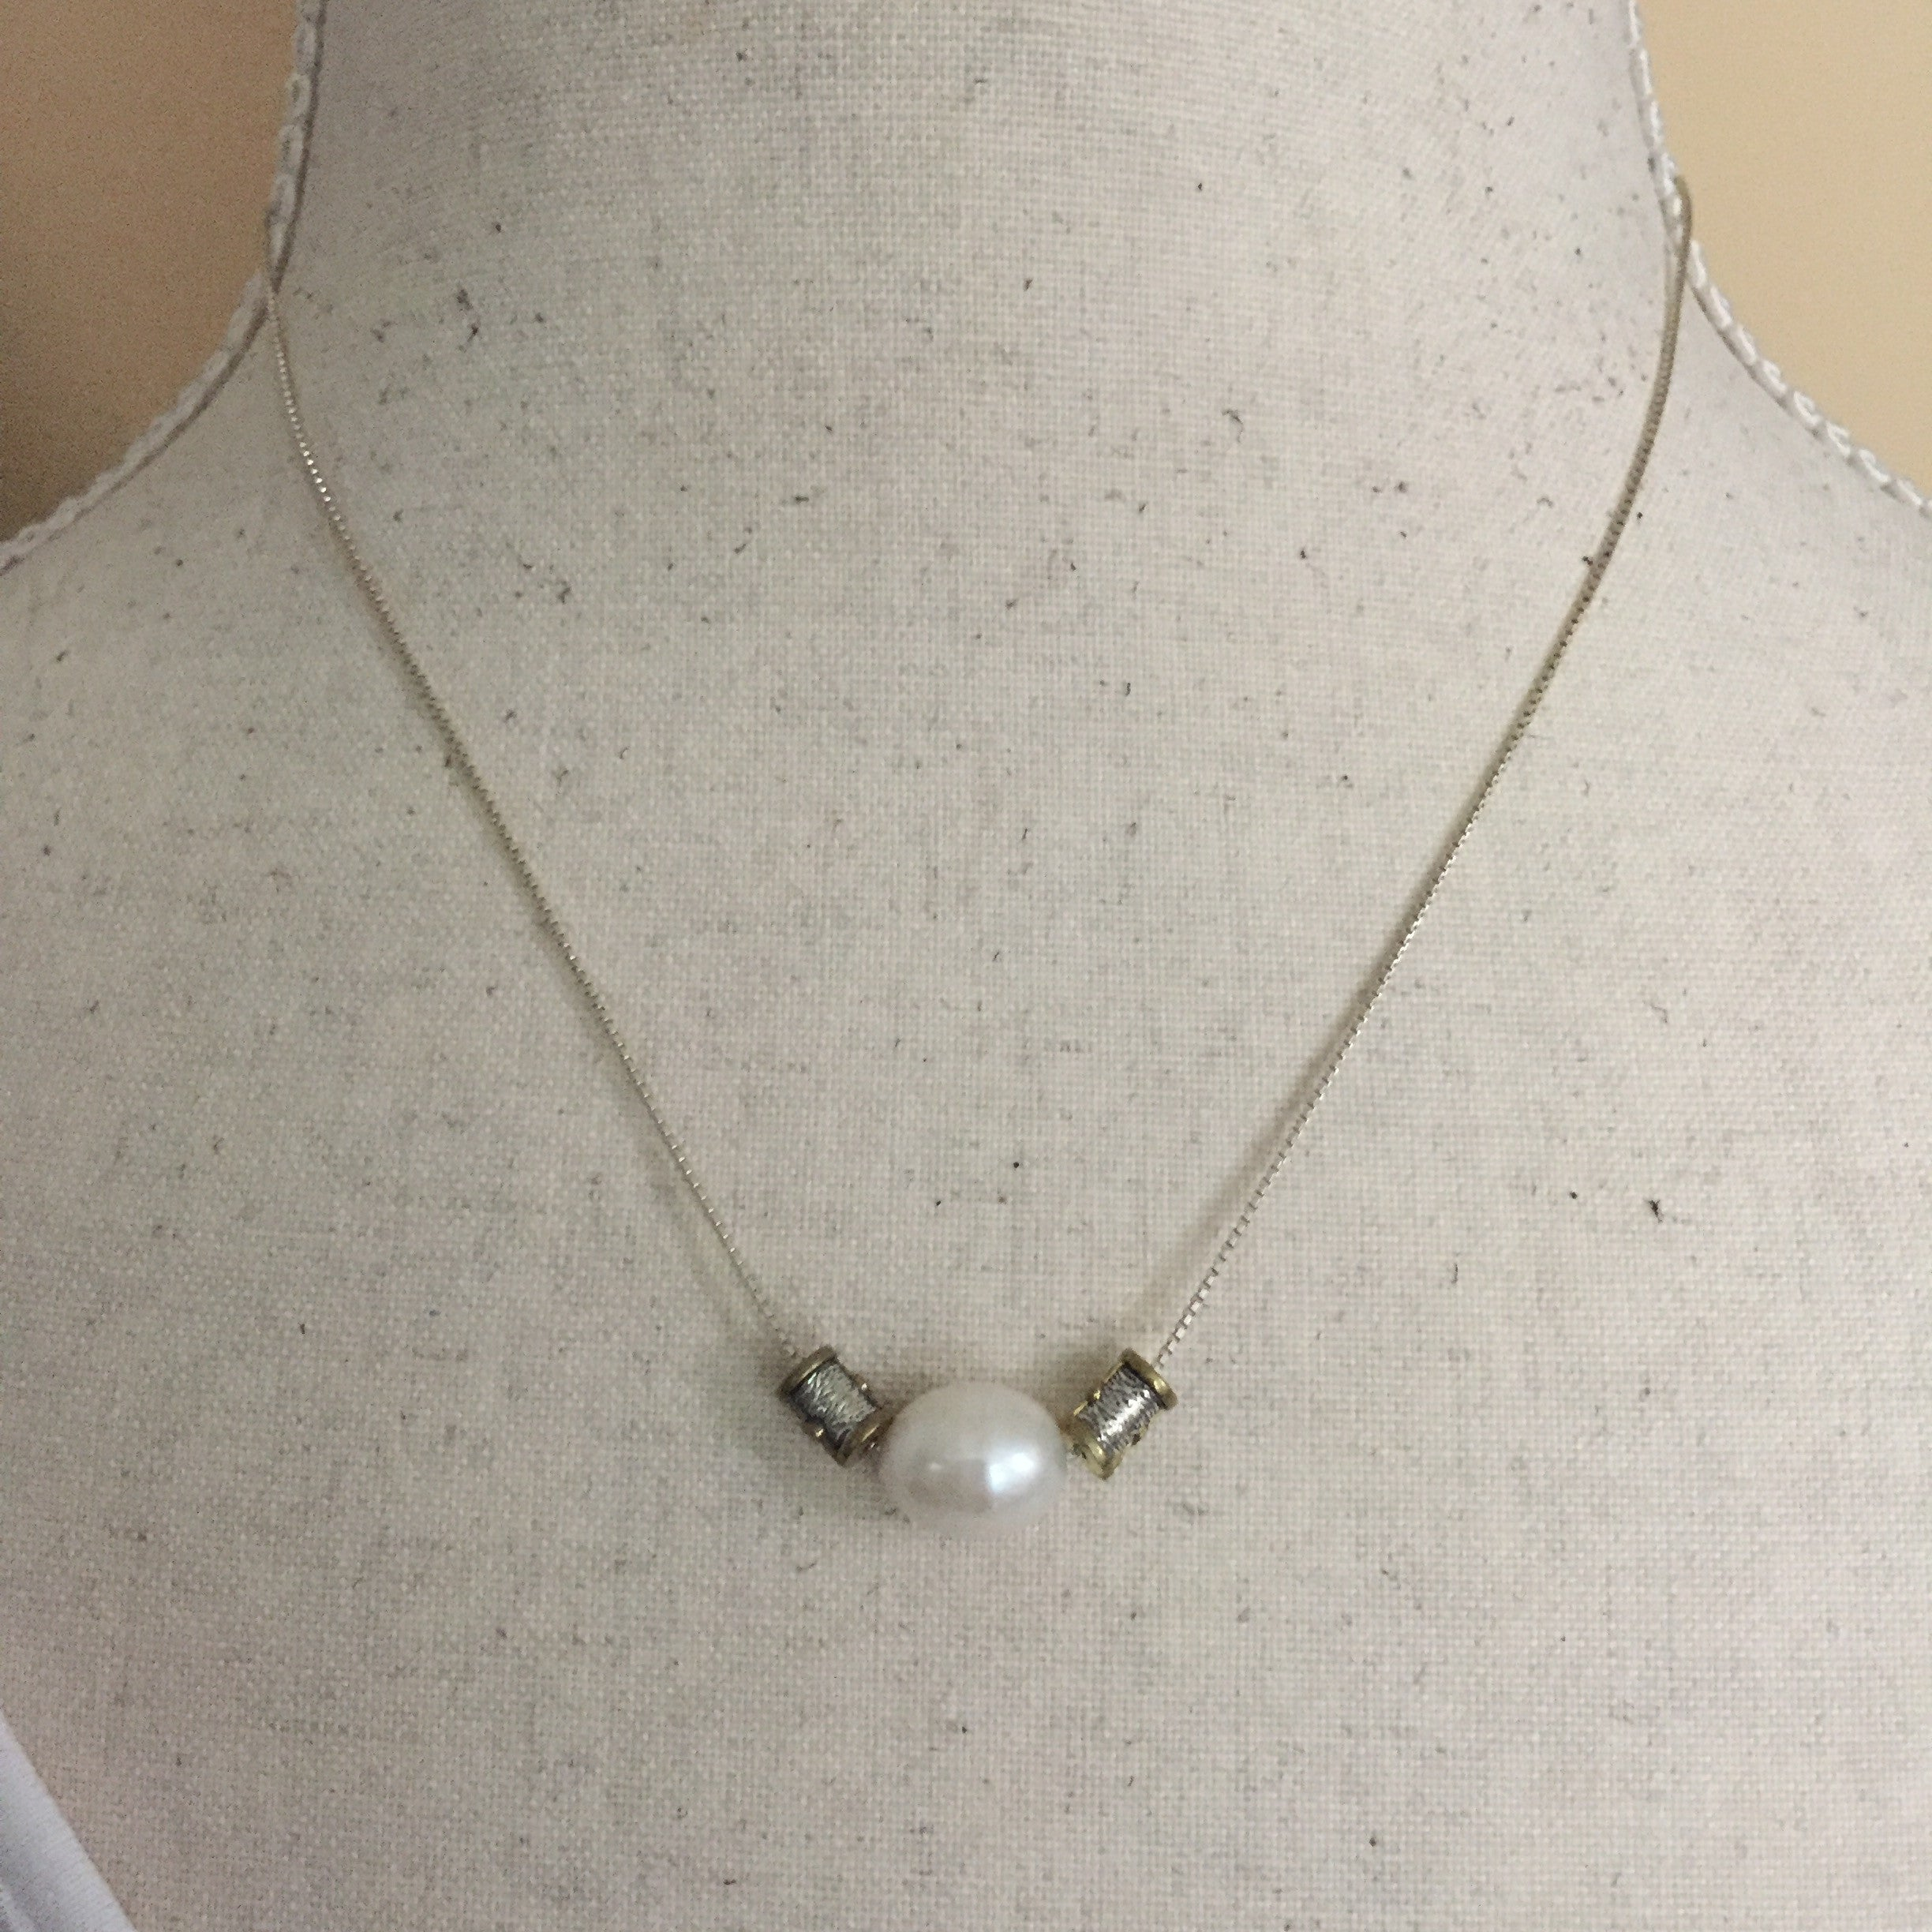 Silpada n3399 simple pearl necklace silverquest designs silpada n3399 simple pearl necklace aloadofball Images